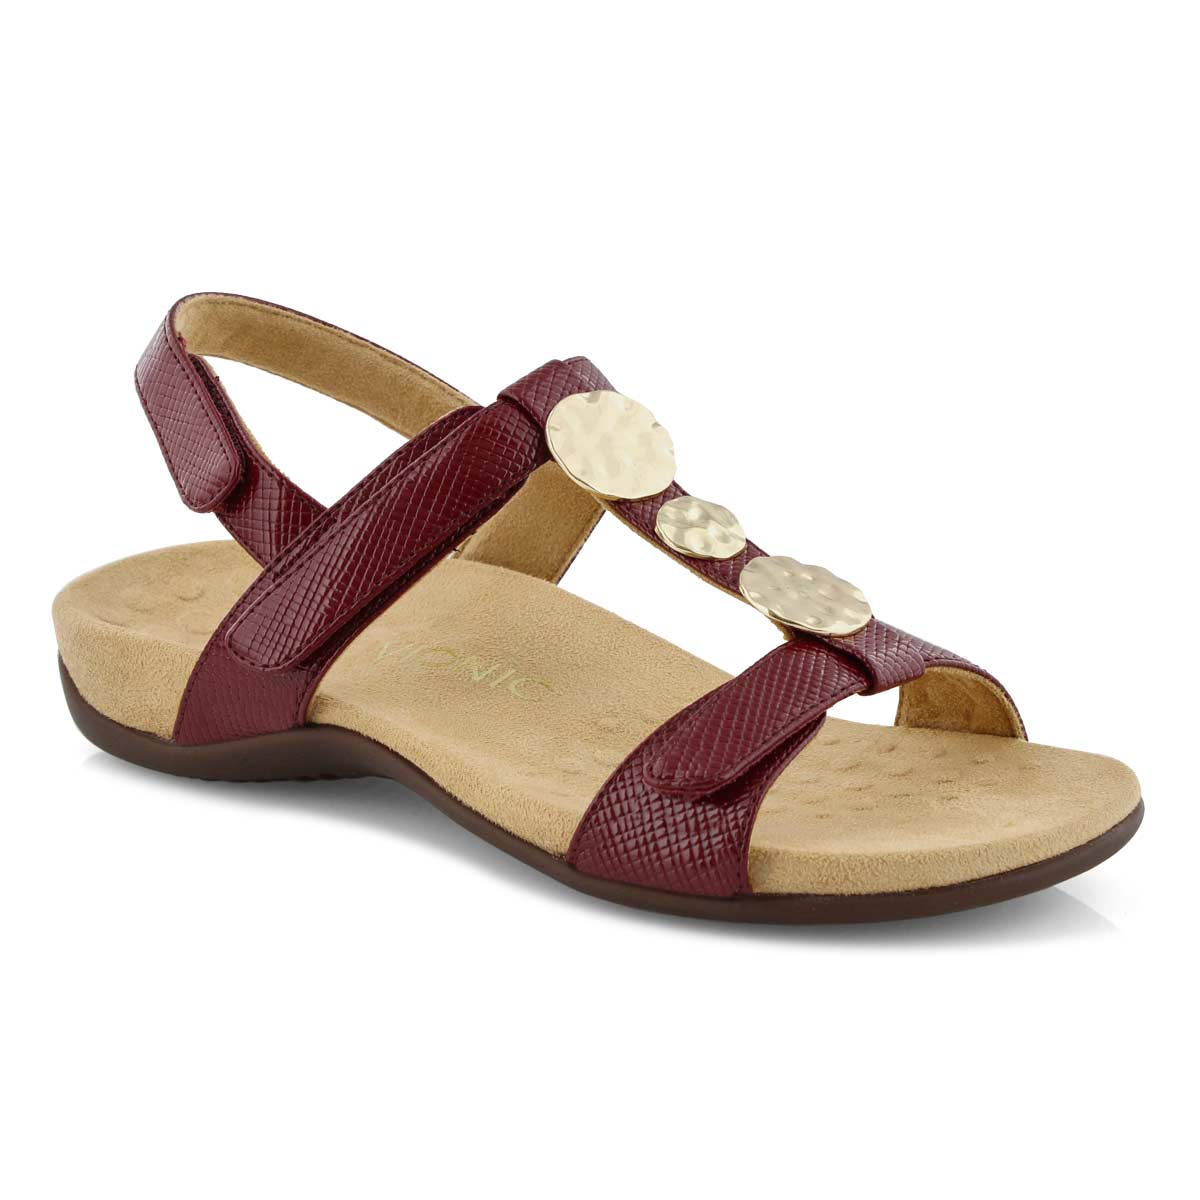 Lds Farra fig arch support sandal